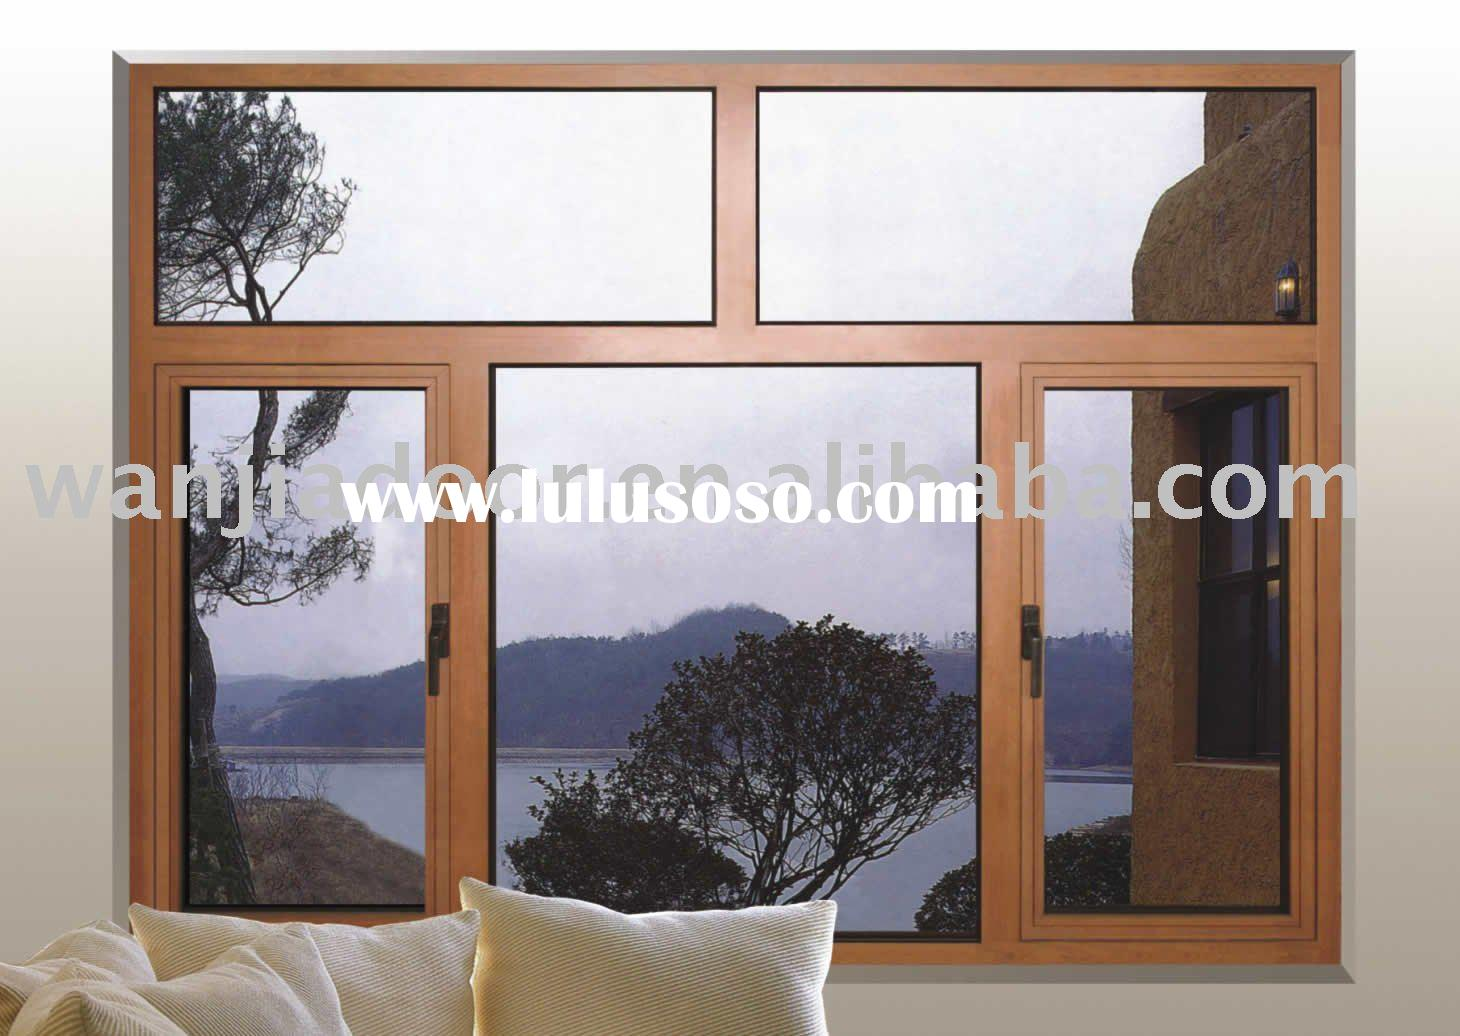 New design aluminum door window